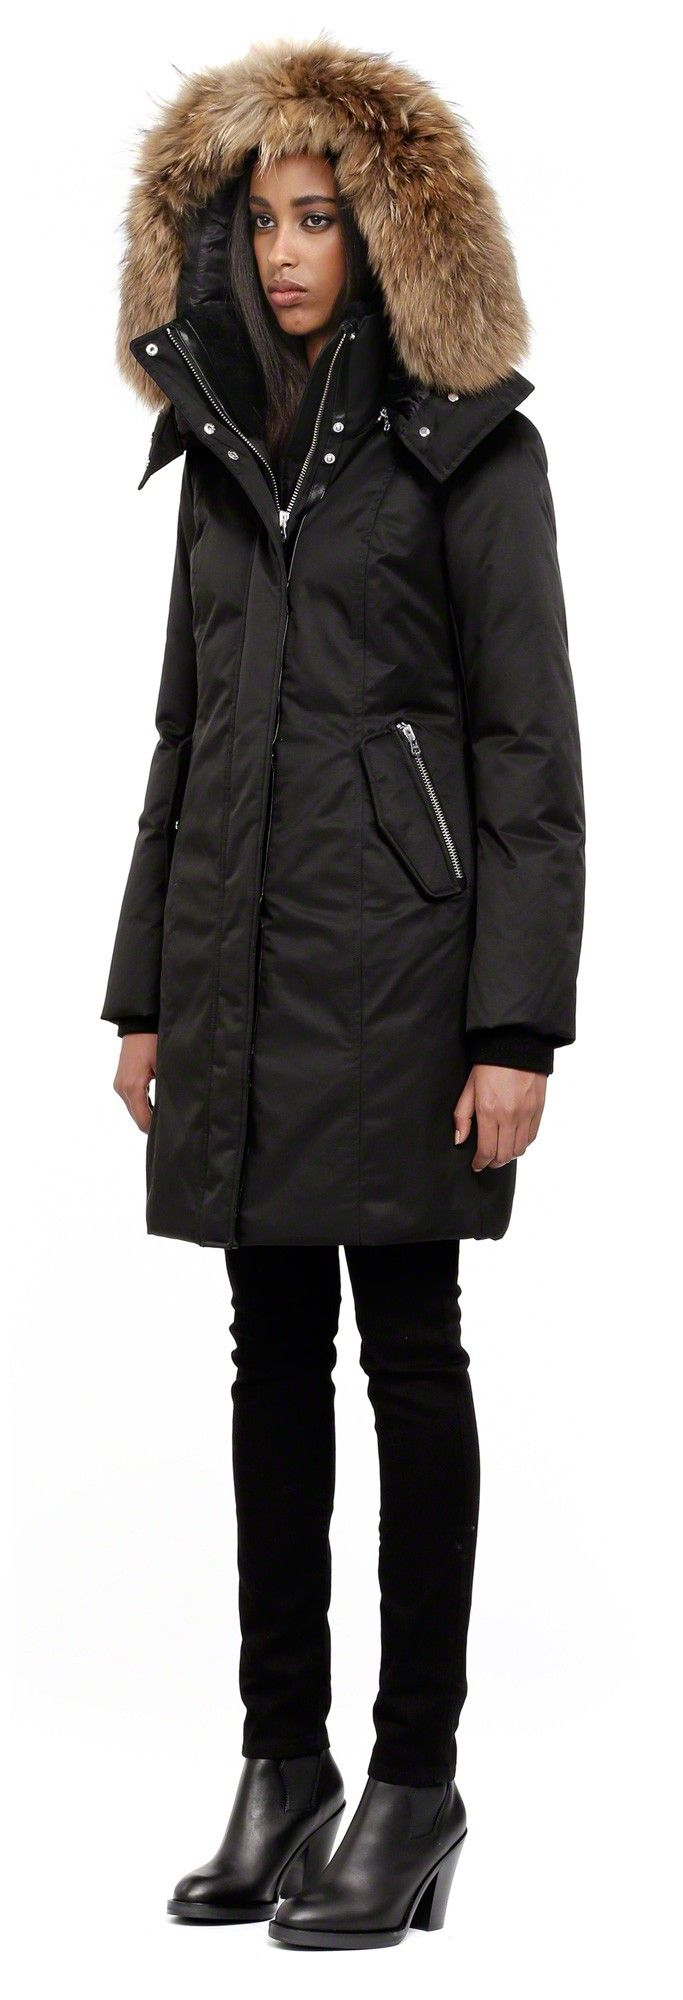 Mackage - KERRY LONG BLACK FITTED WINTER DOWN PARKA FOR WOMEN WITH FUR HOOD  - Black